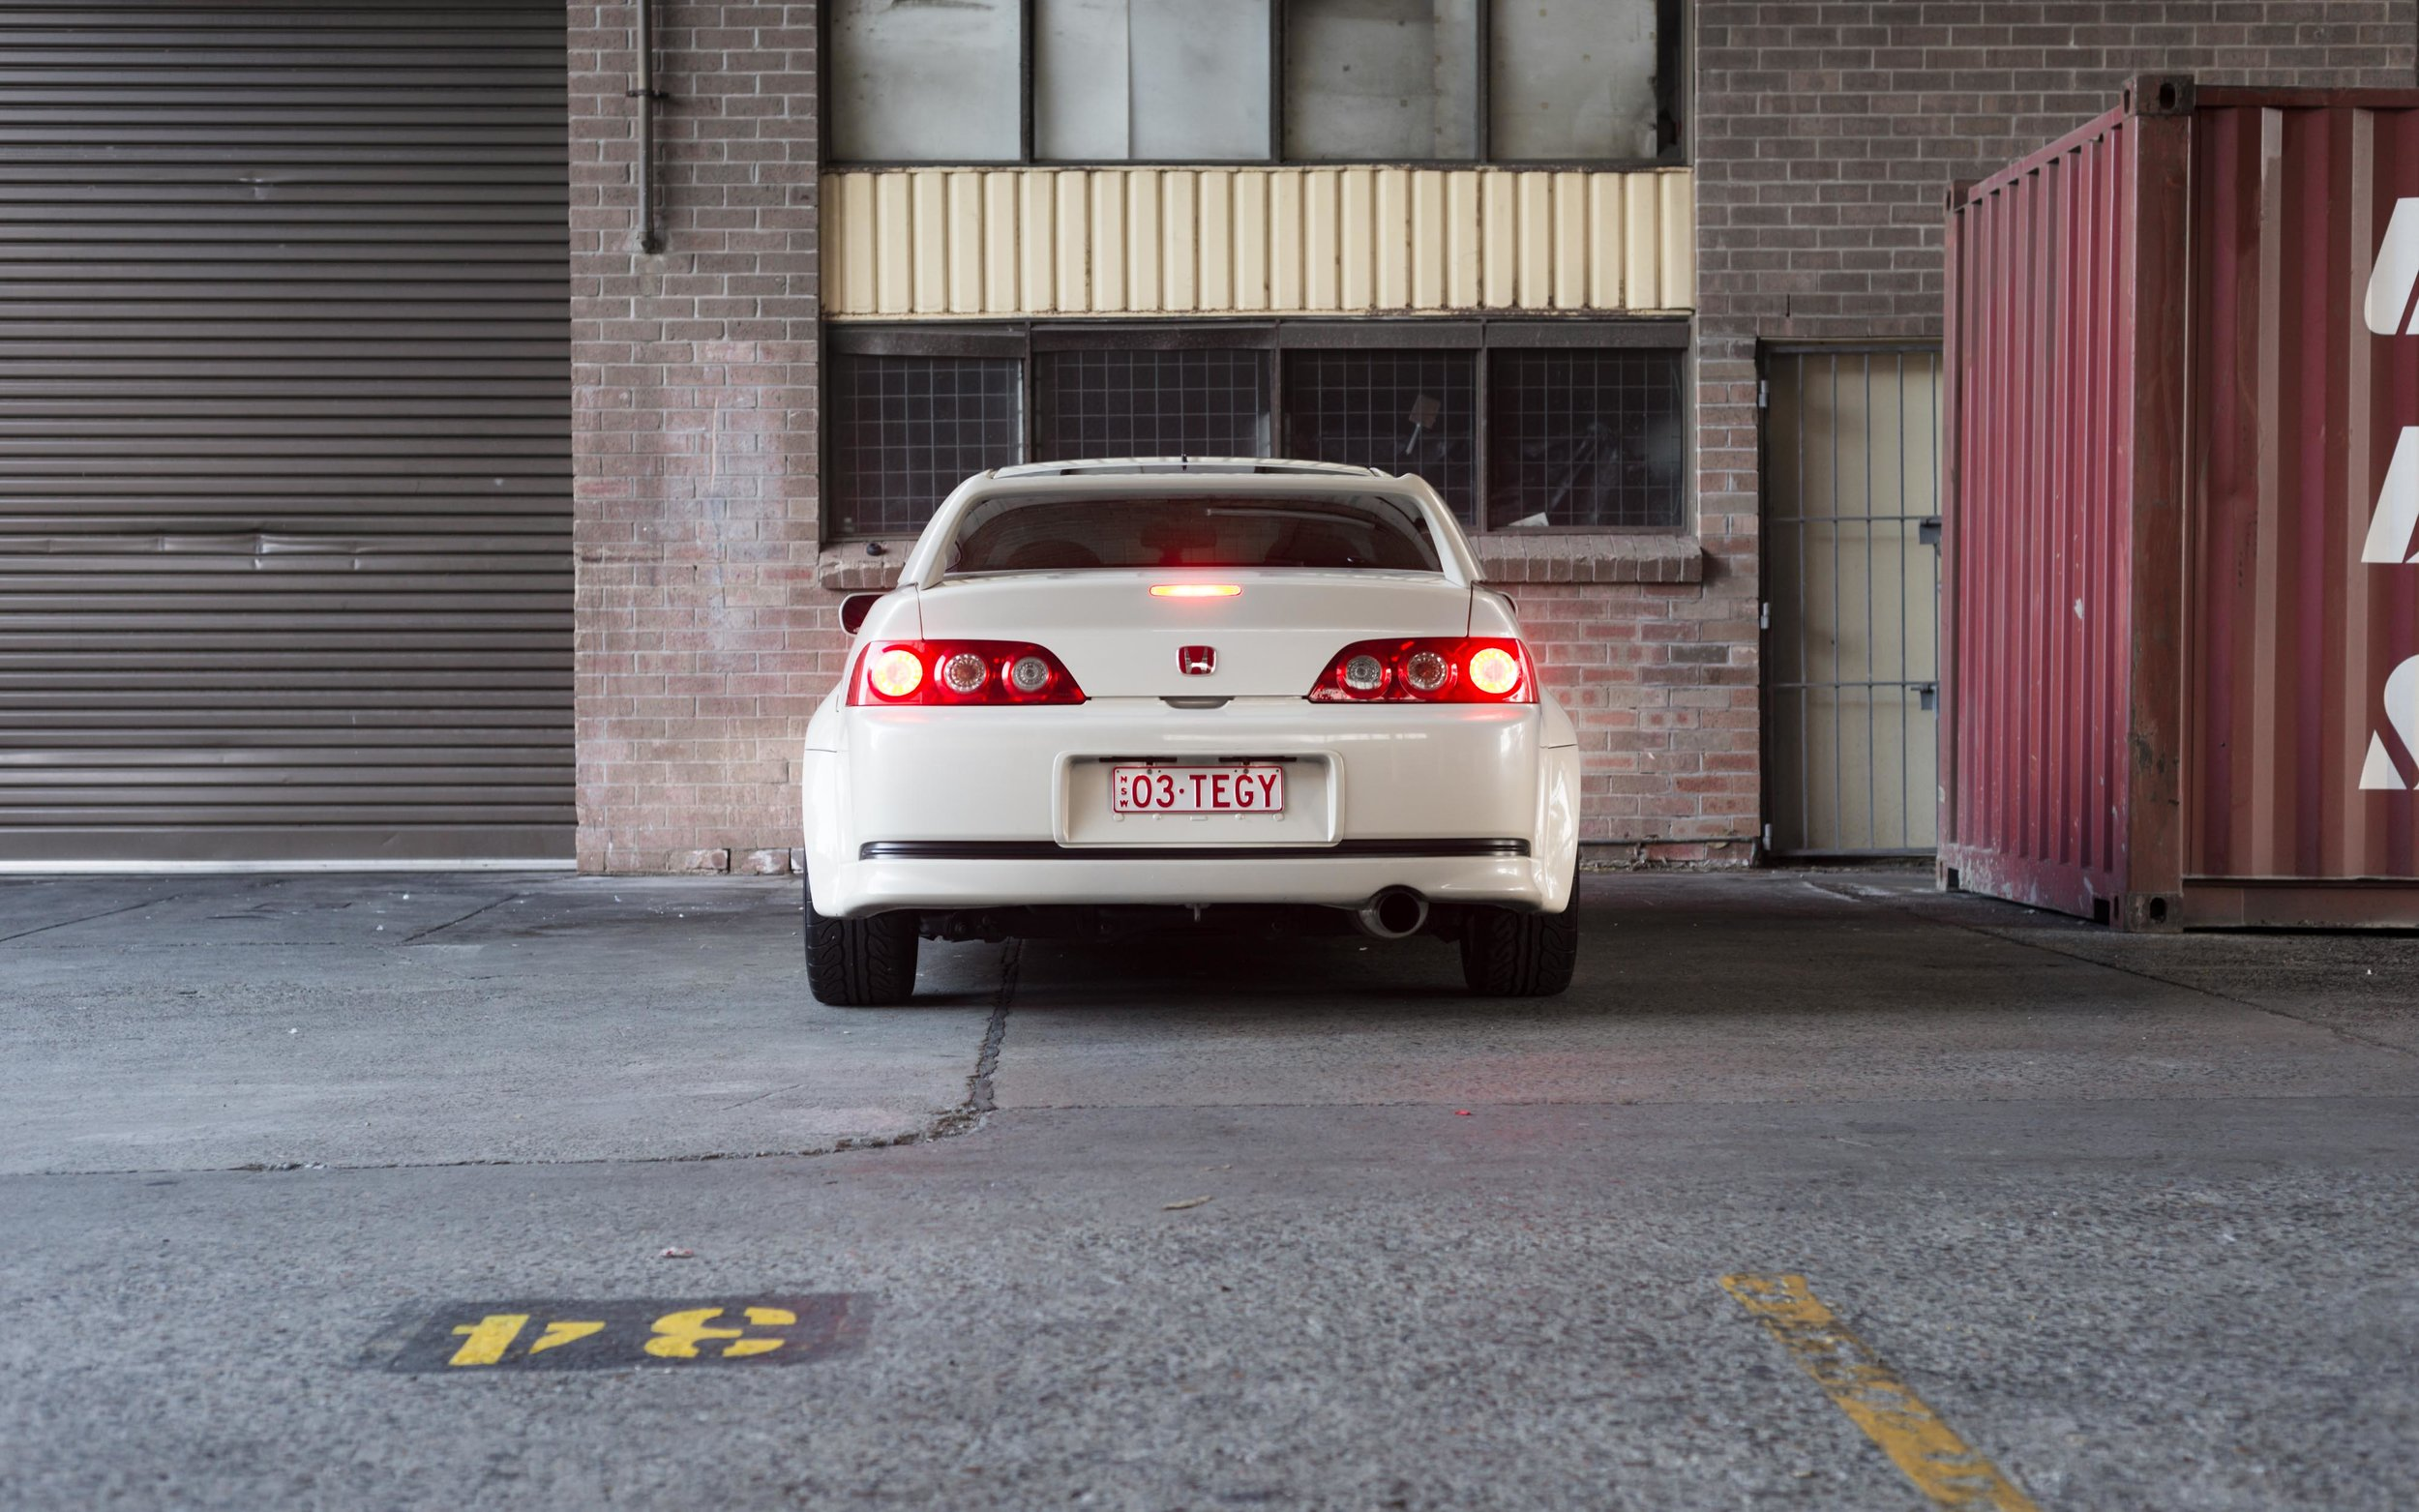 white honda dc5 rear brakelights